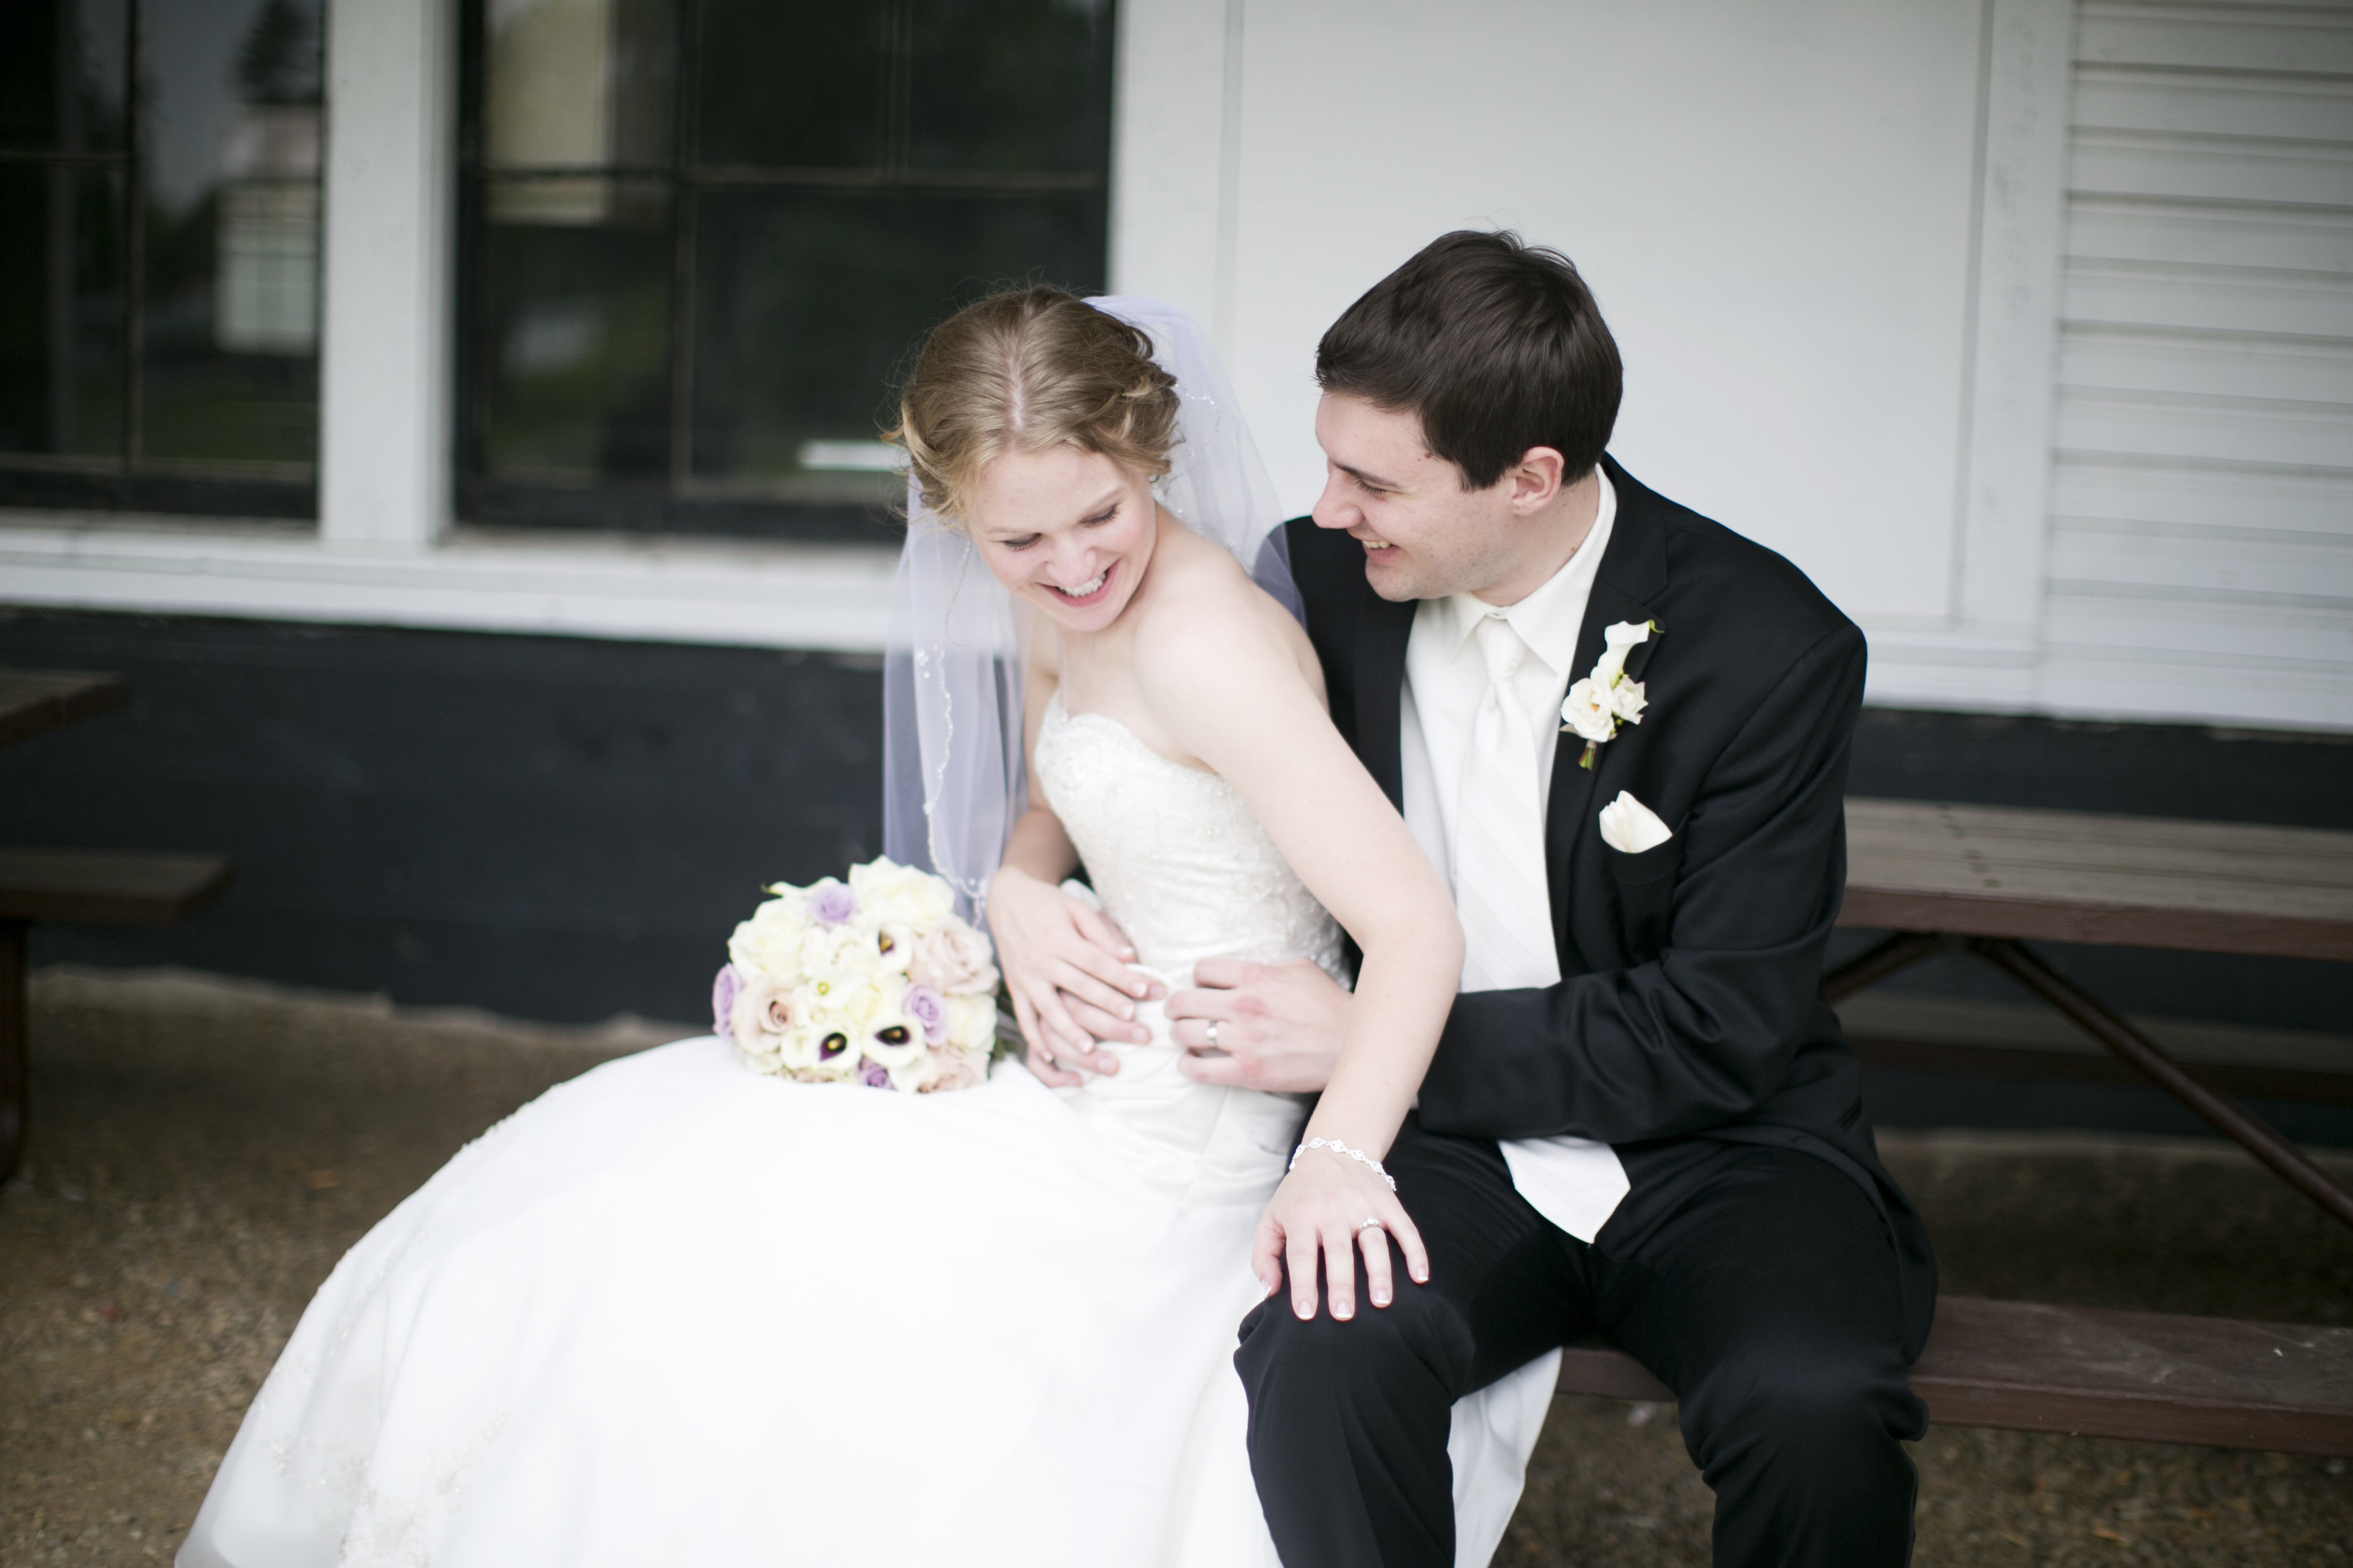 sweet happy wedding portrait